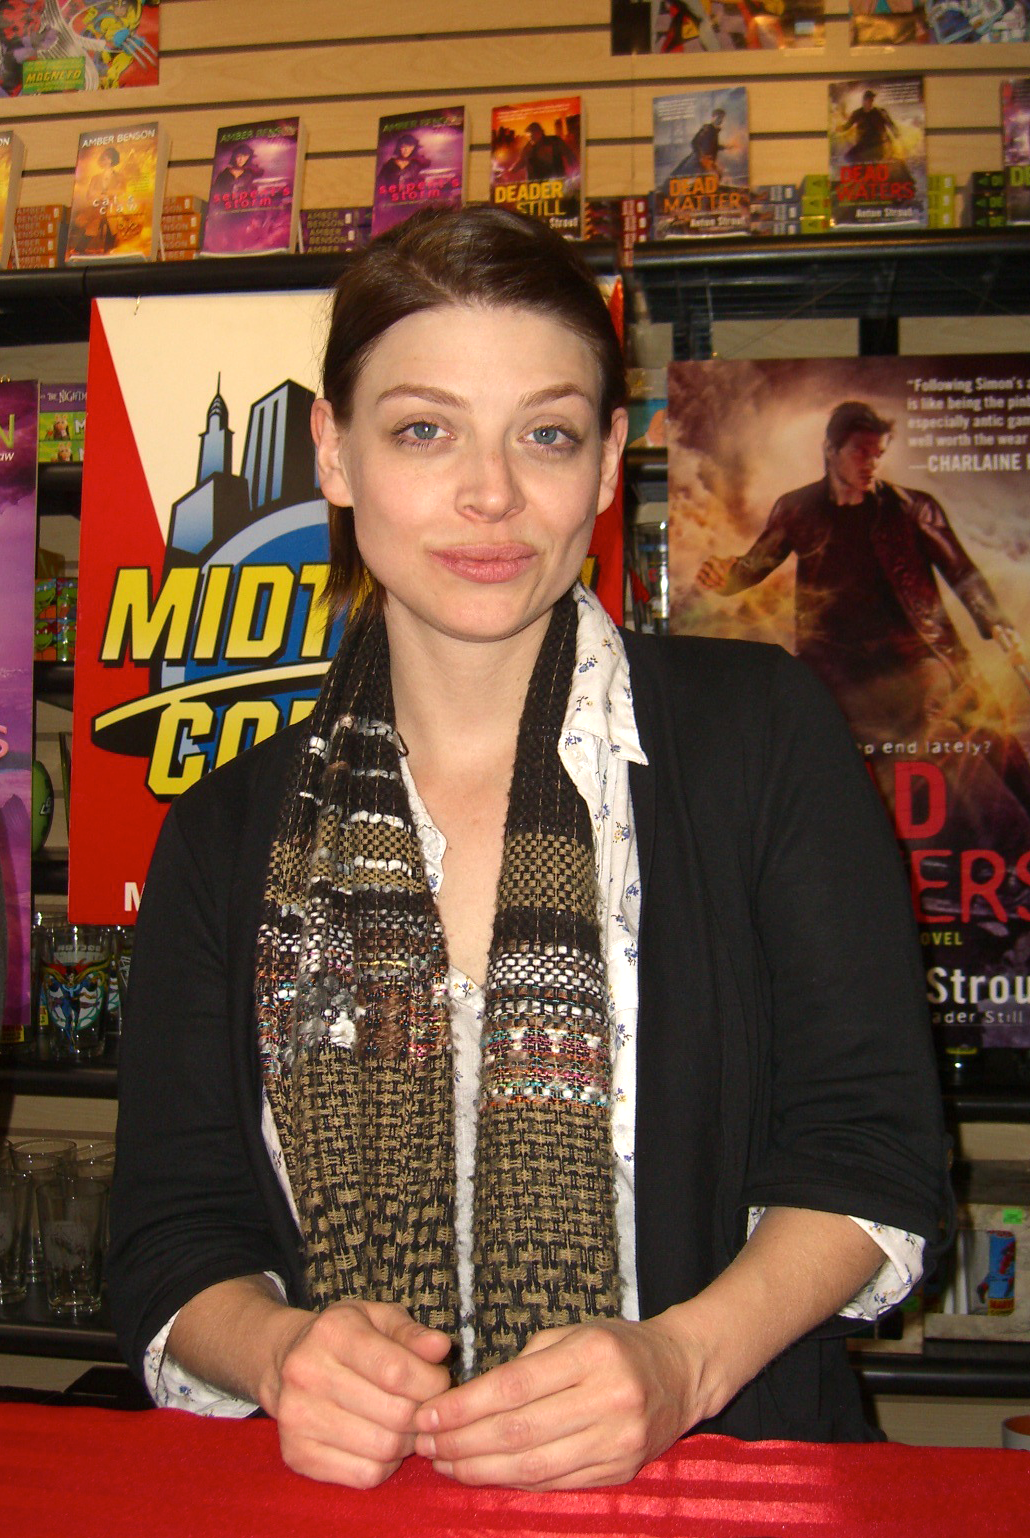 The 42-year old daughter of father Edward Benson and mother Diane Benson Amber Benson in 2019 photo. Amber Benson earned a  million dollar salary - leaving the net worth at 3 million in 2019